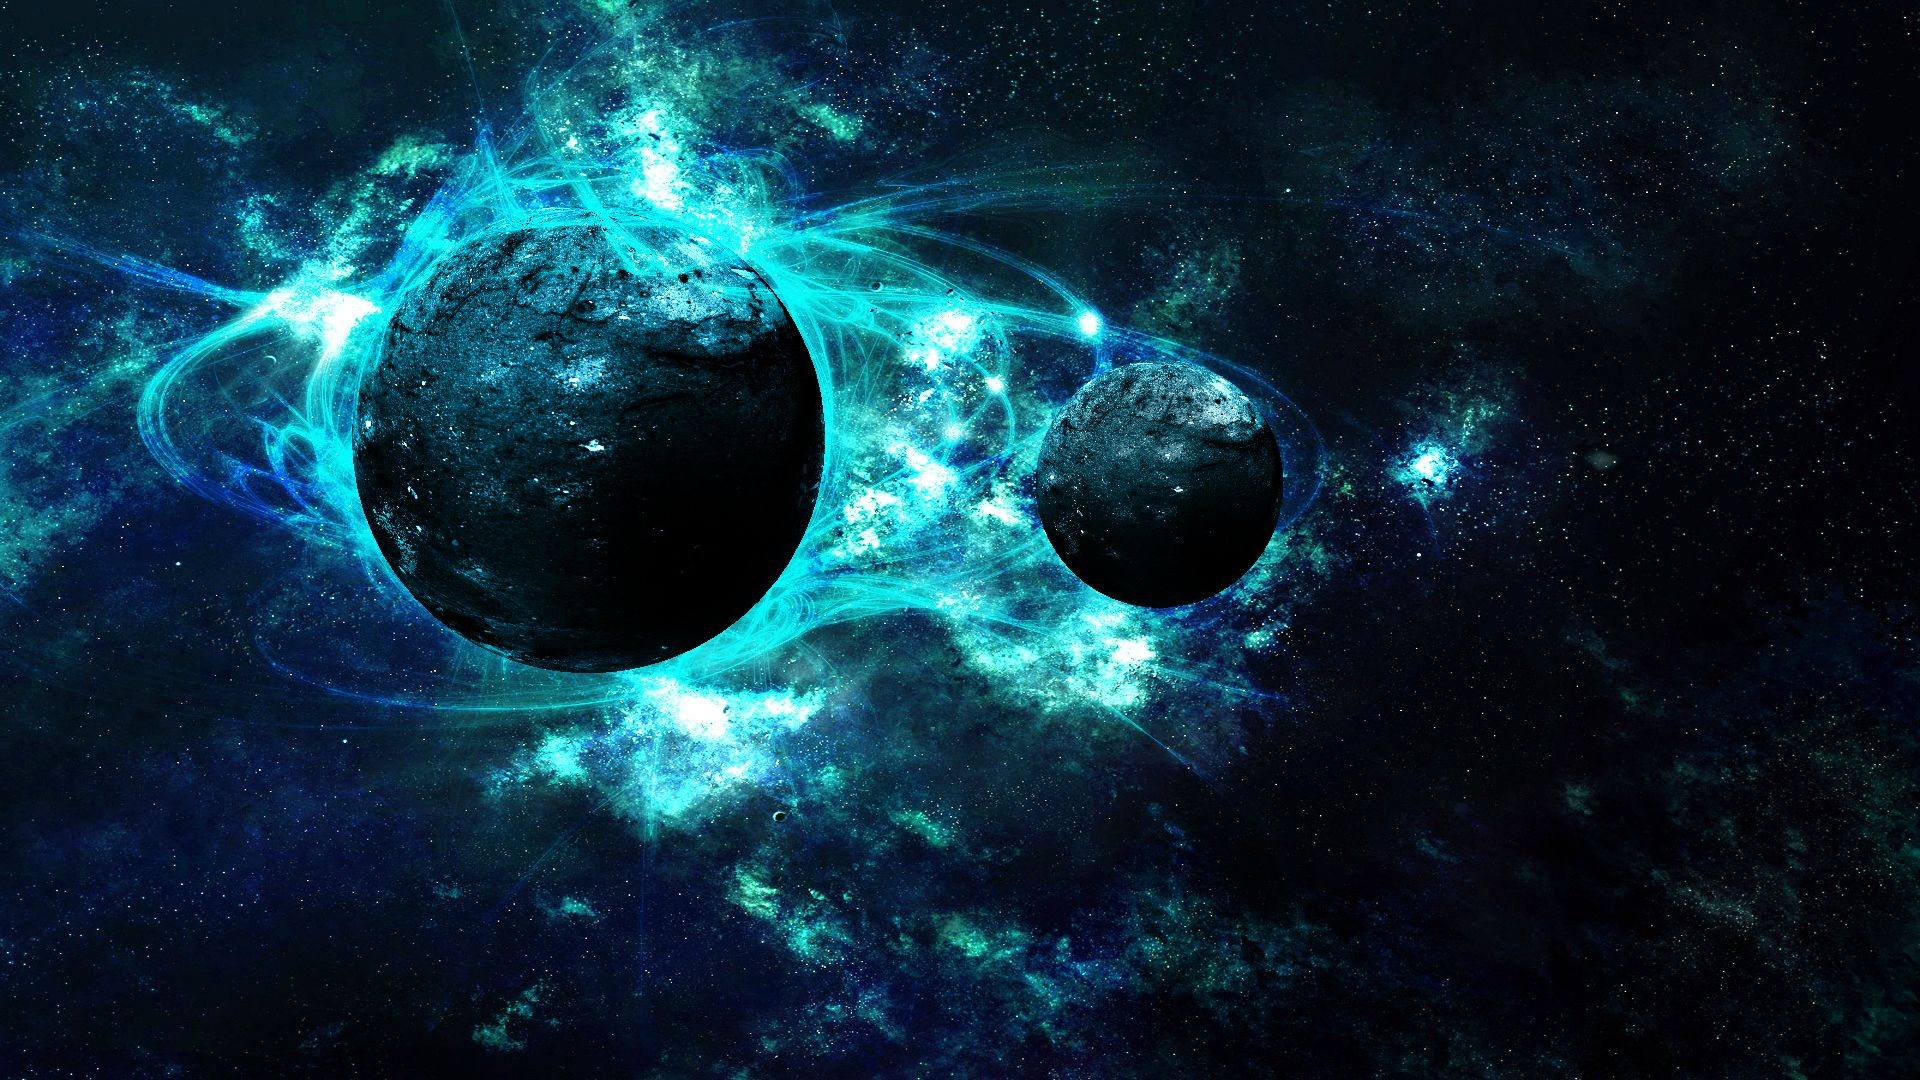 Fantasy Pictures Wallpapers Space Fantasy Wallpaper Set 62 Awesome Wallpapers Dubstep Wallpaper Planets Wallpaper Hd Cool Wallpapers